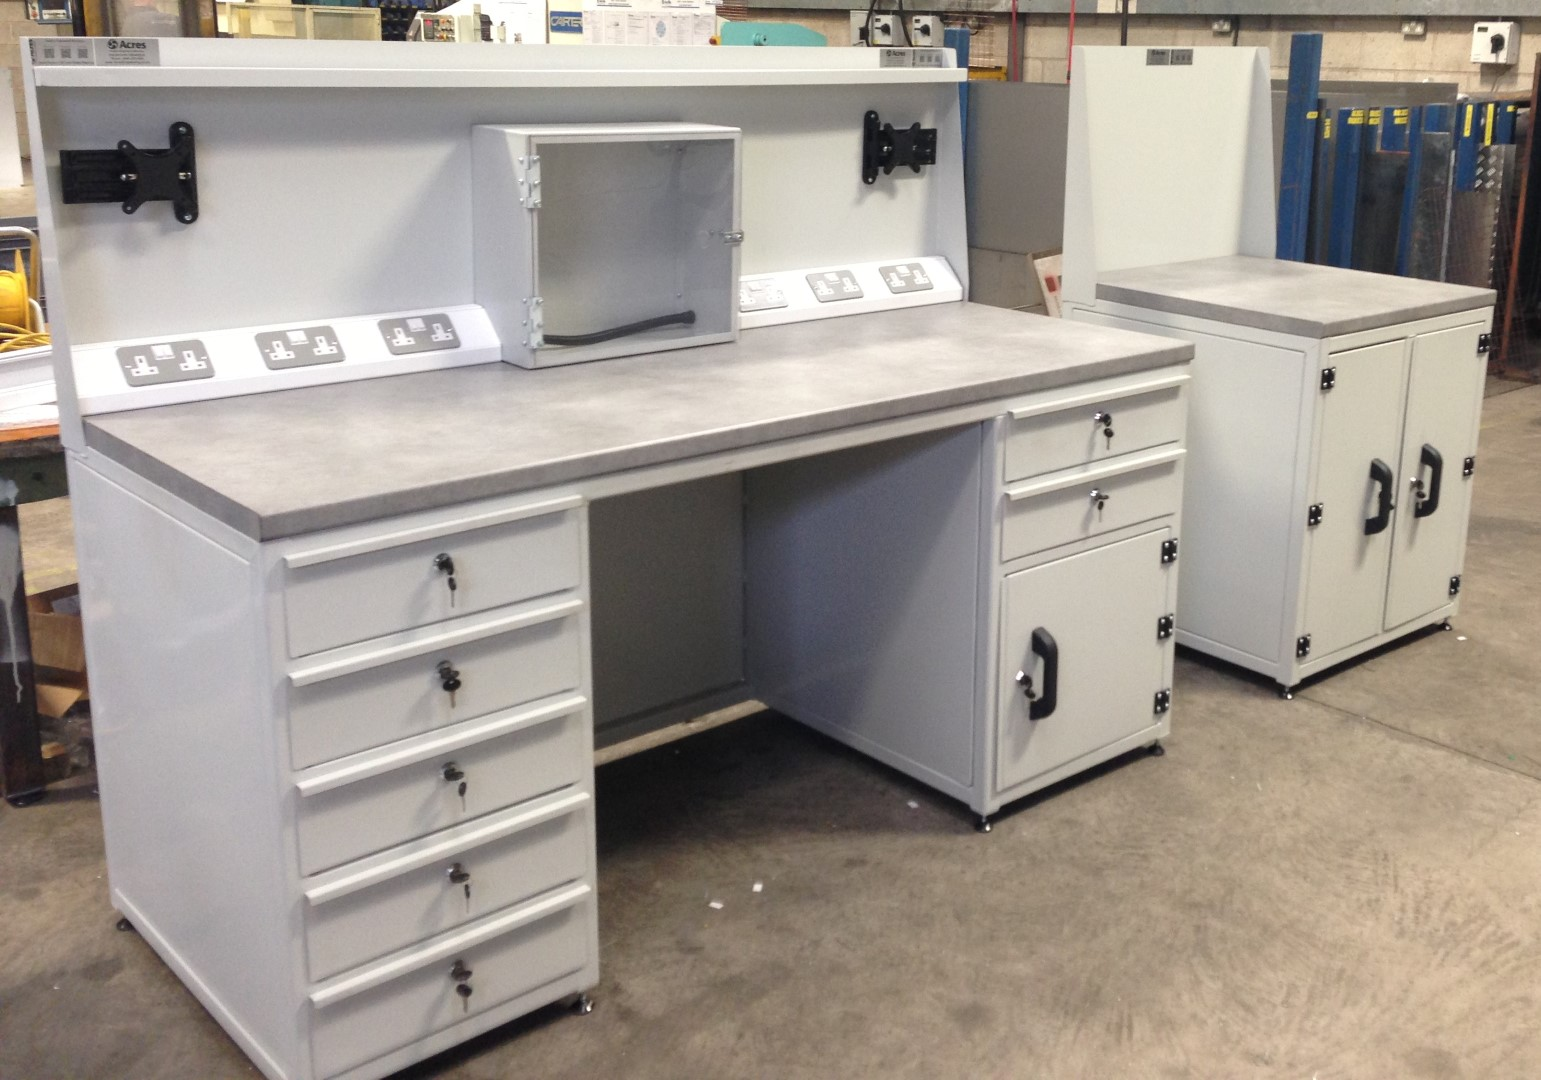 AD-214-2013-05 – TBF Tool Room Bench And Cupboard